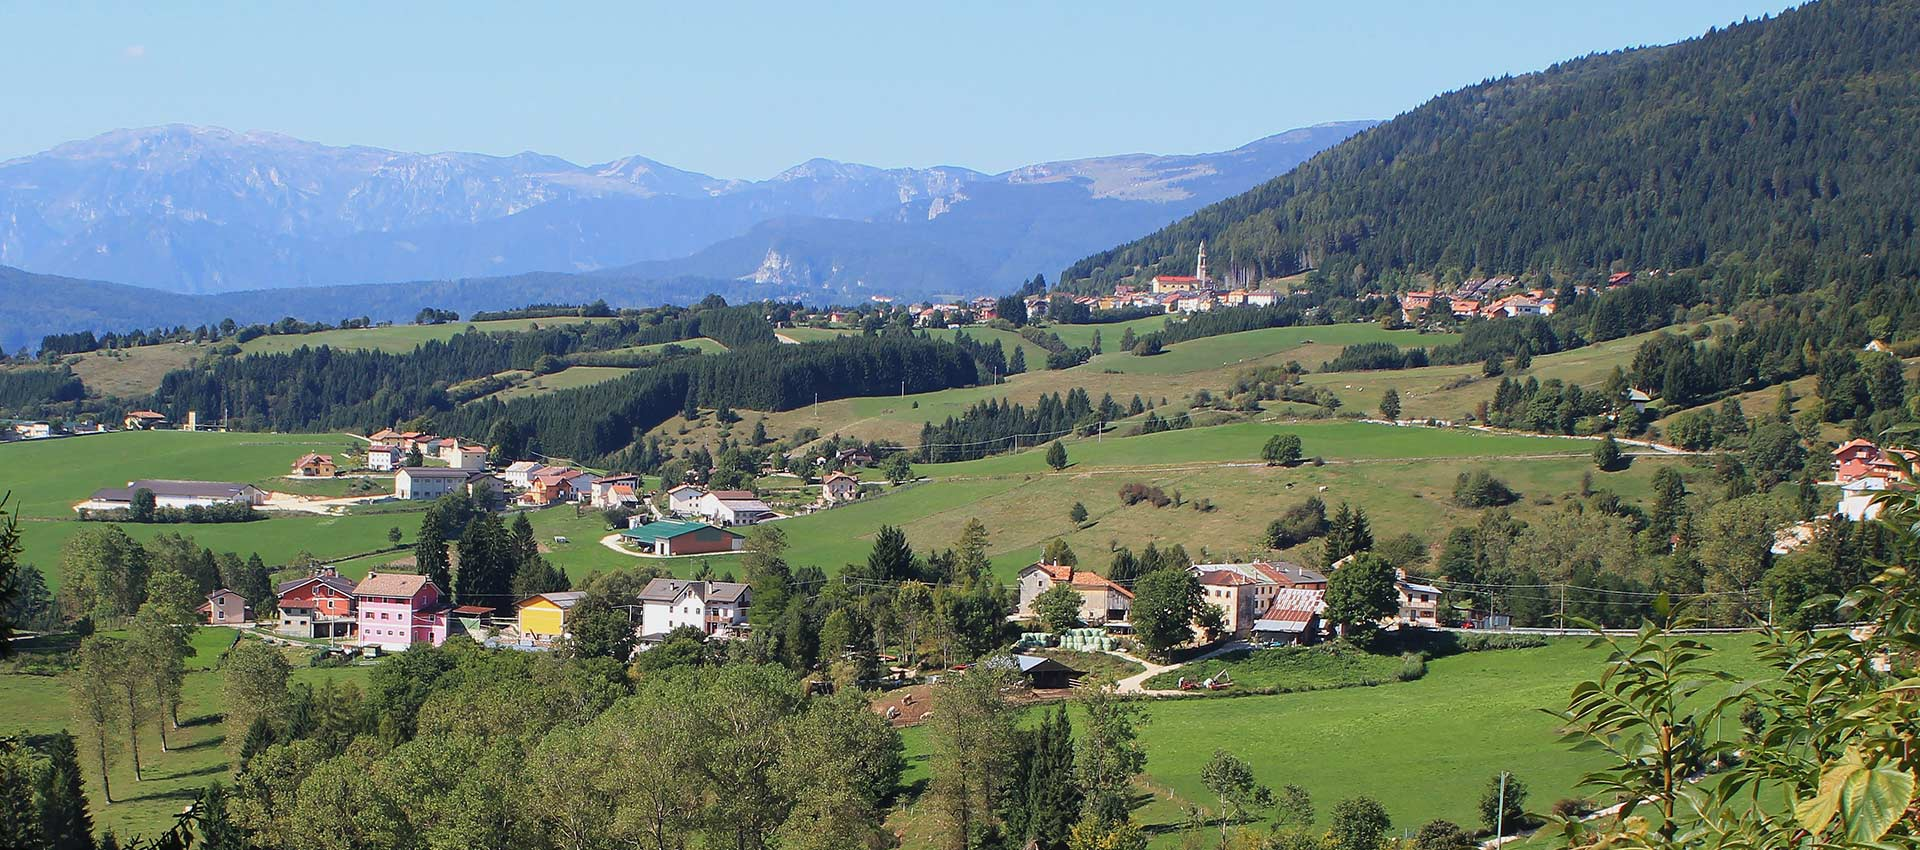 Panorama of Mezzaselva